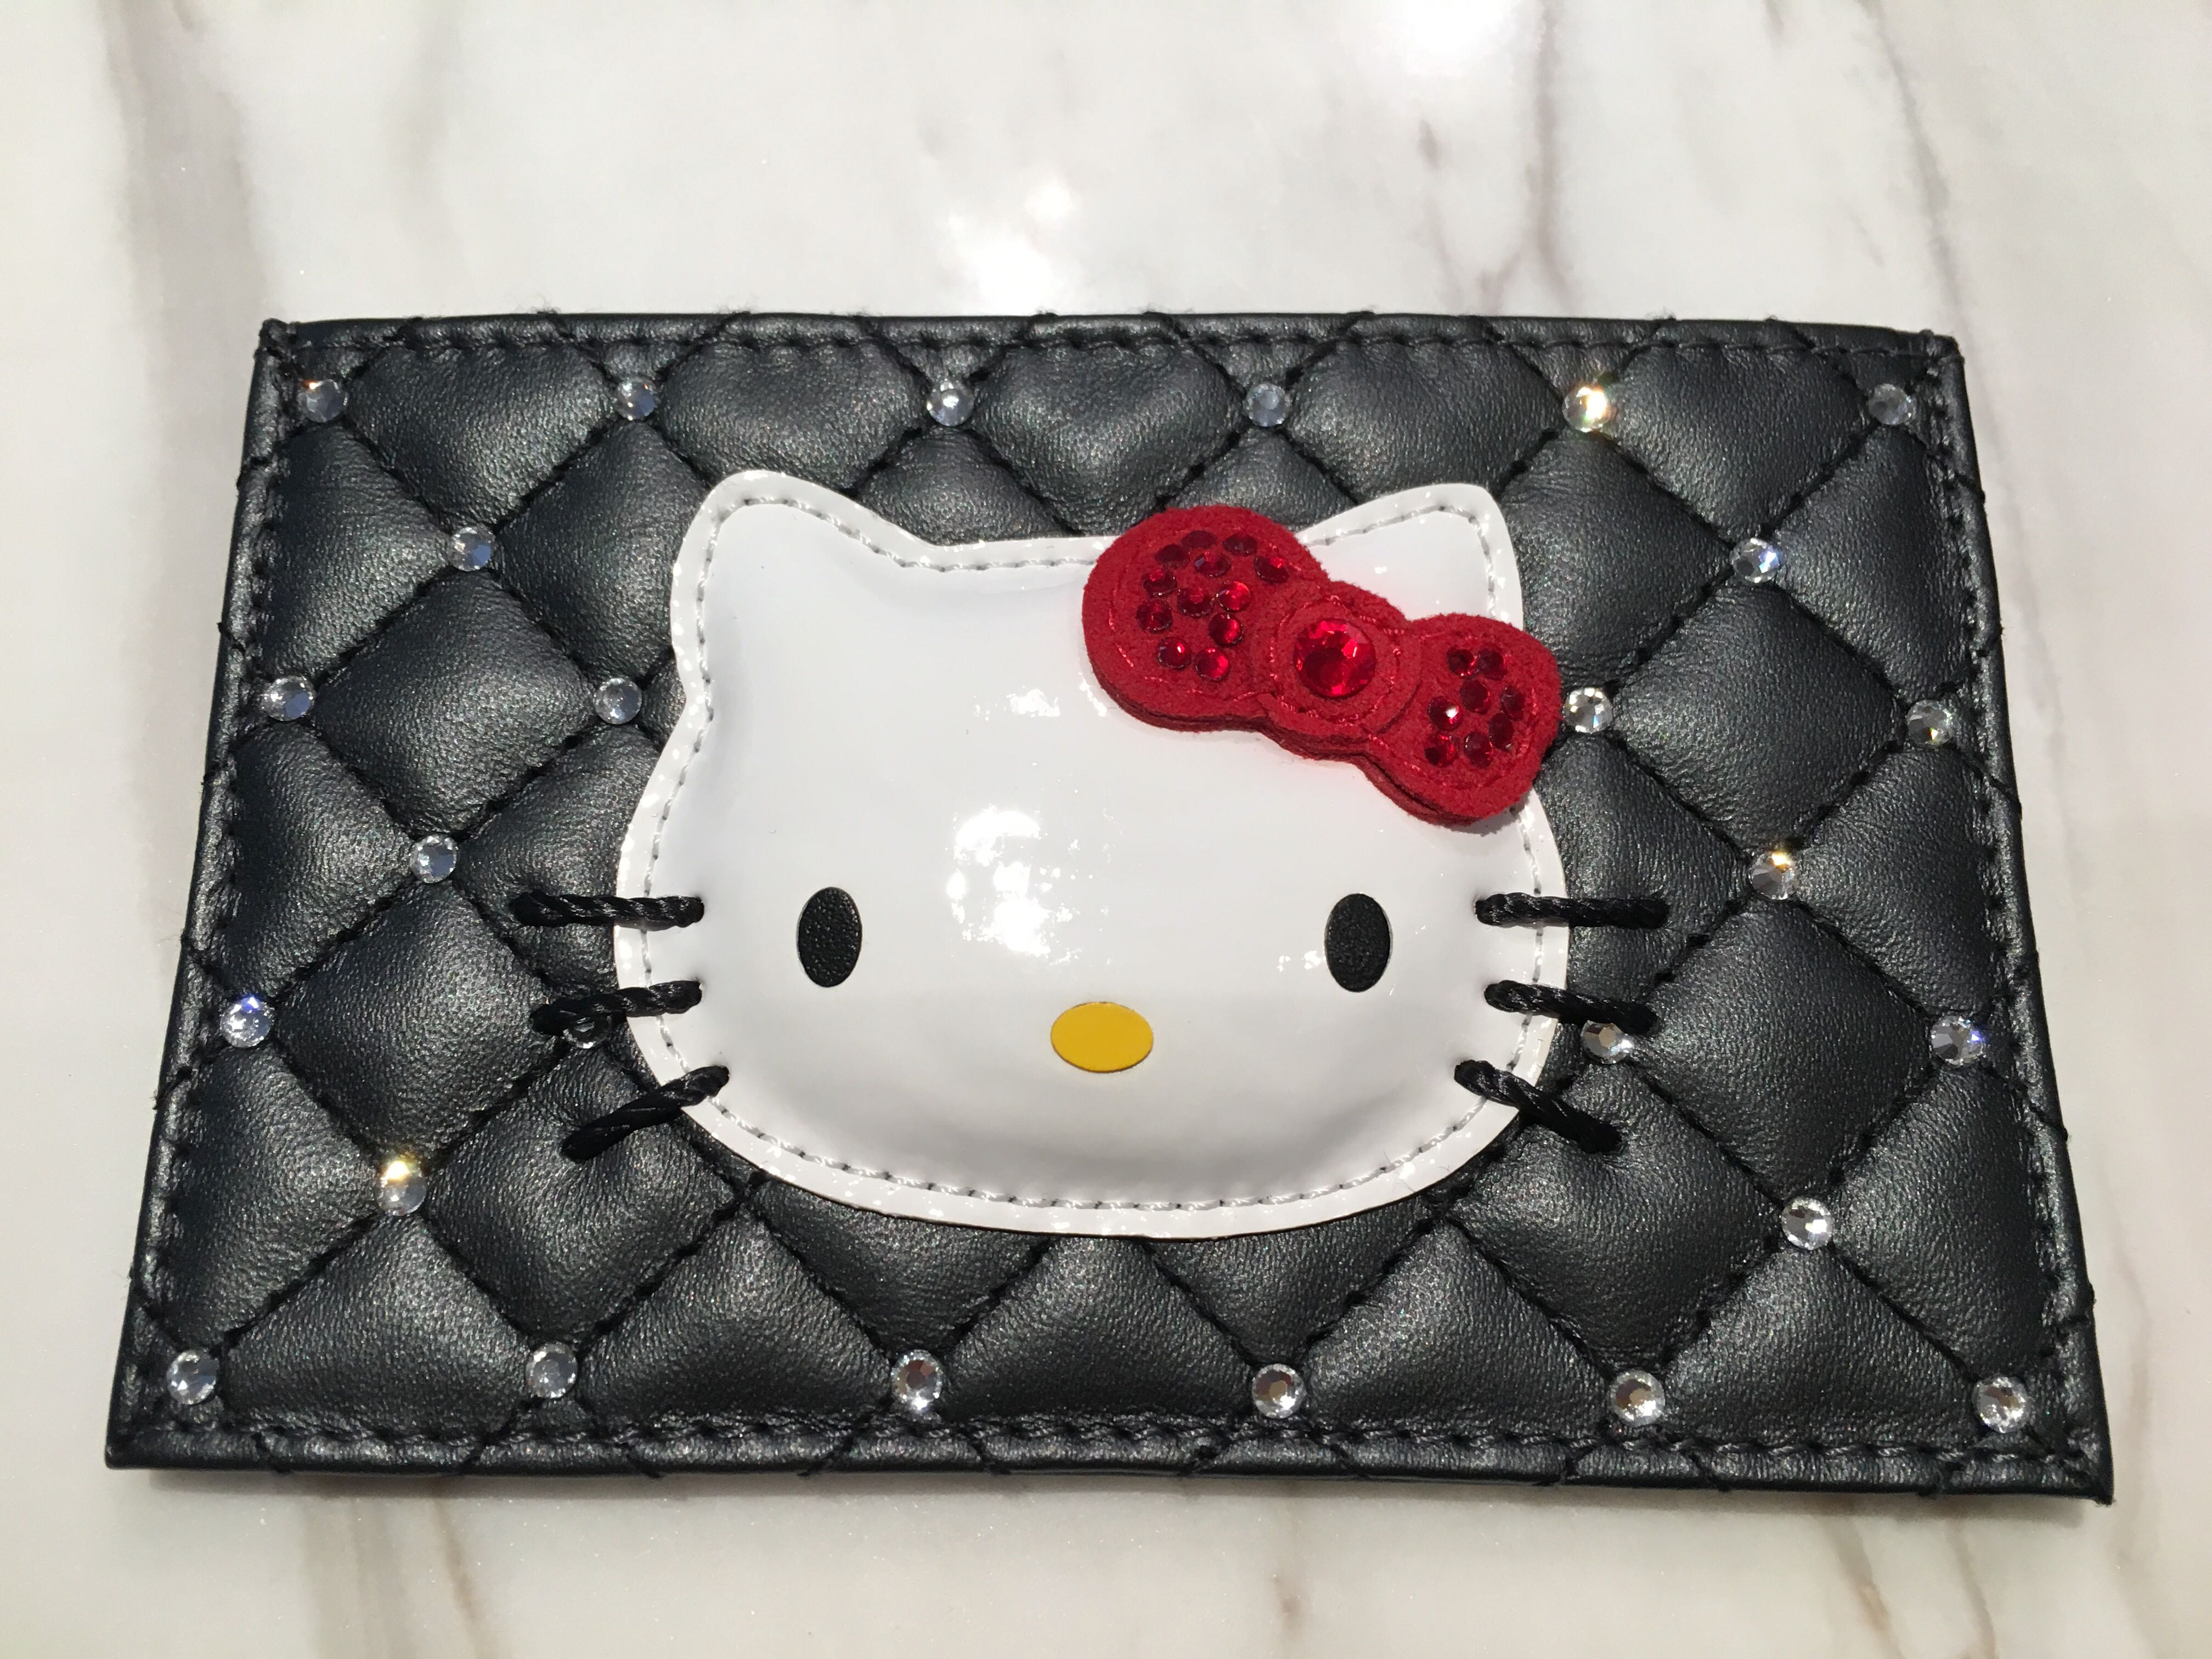 c571077d4 Brand new Swarovski Hello Kitty Card Holder, Women's Fashion, Bags &  Wallets, Wallets on Carousell